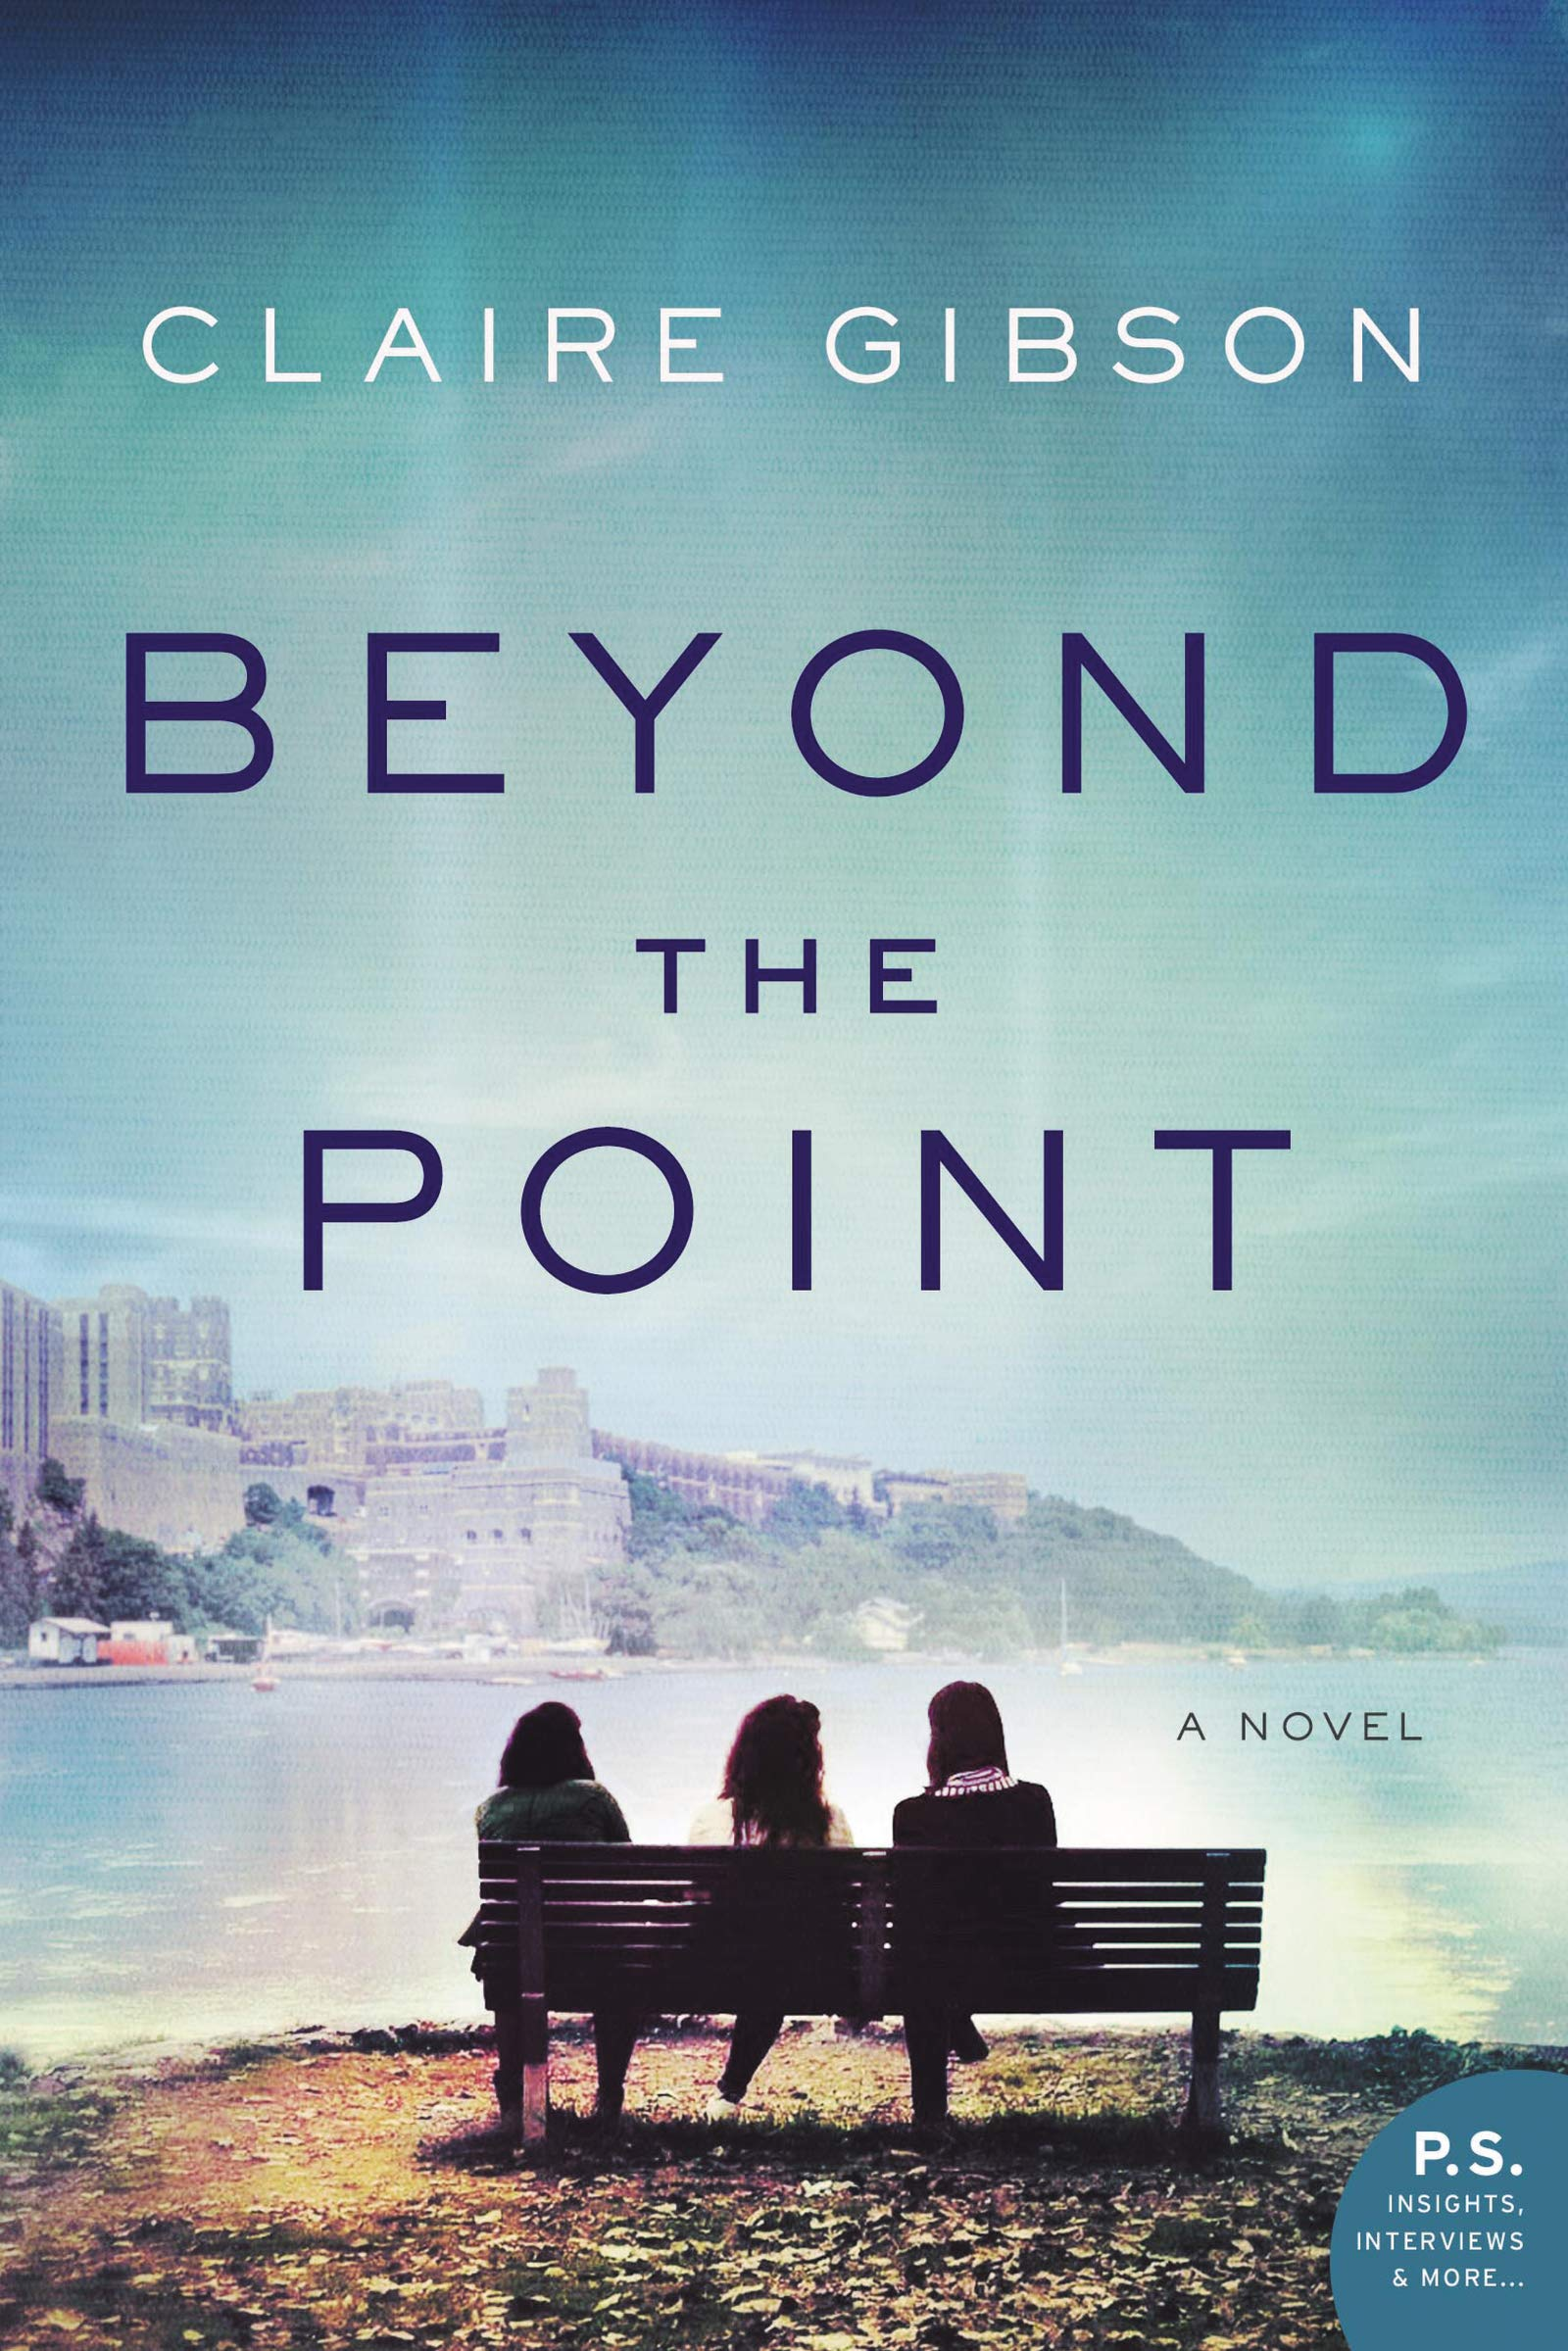 Beyond the Point, by Claire Gibson